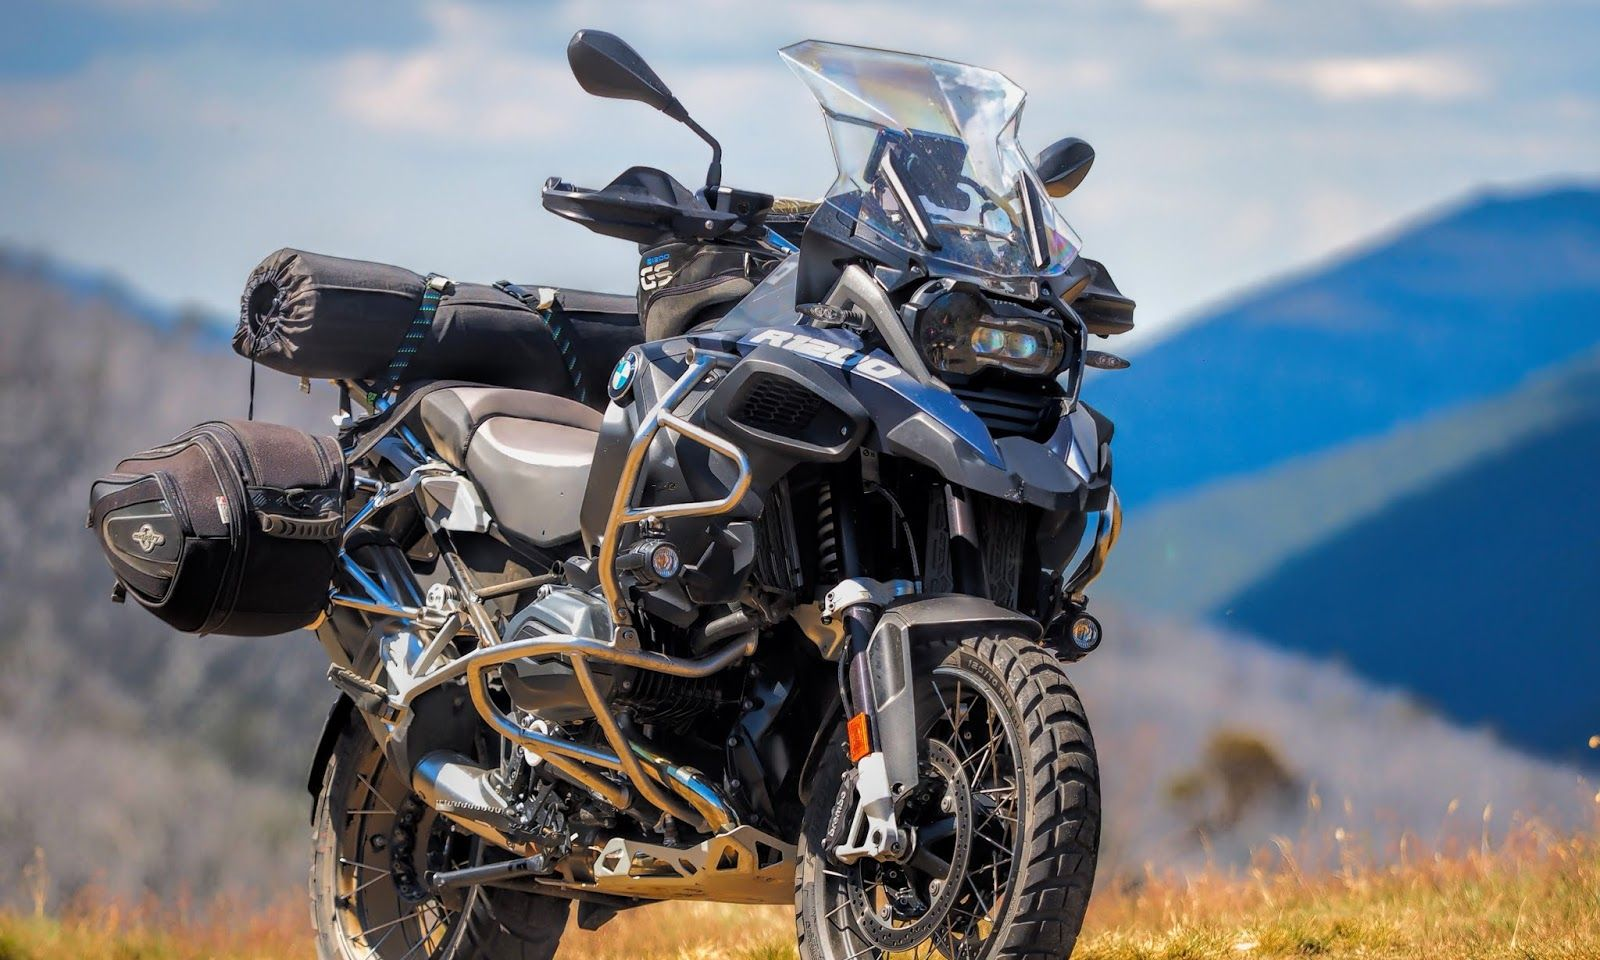 BMW GS 1200 HD Wallpapers free download. This BMW Bikes R ...